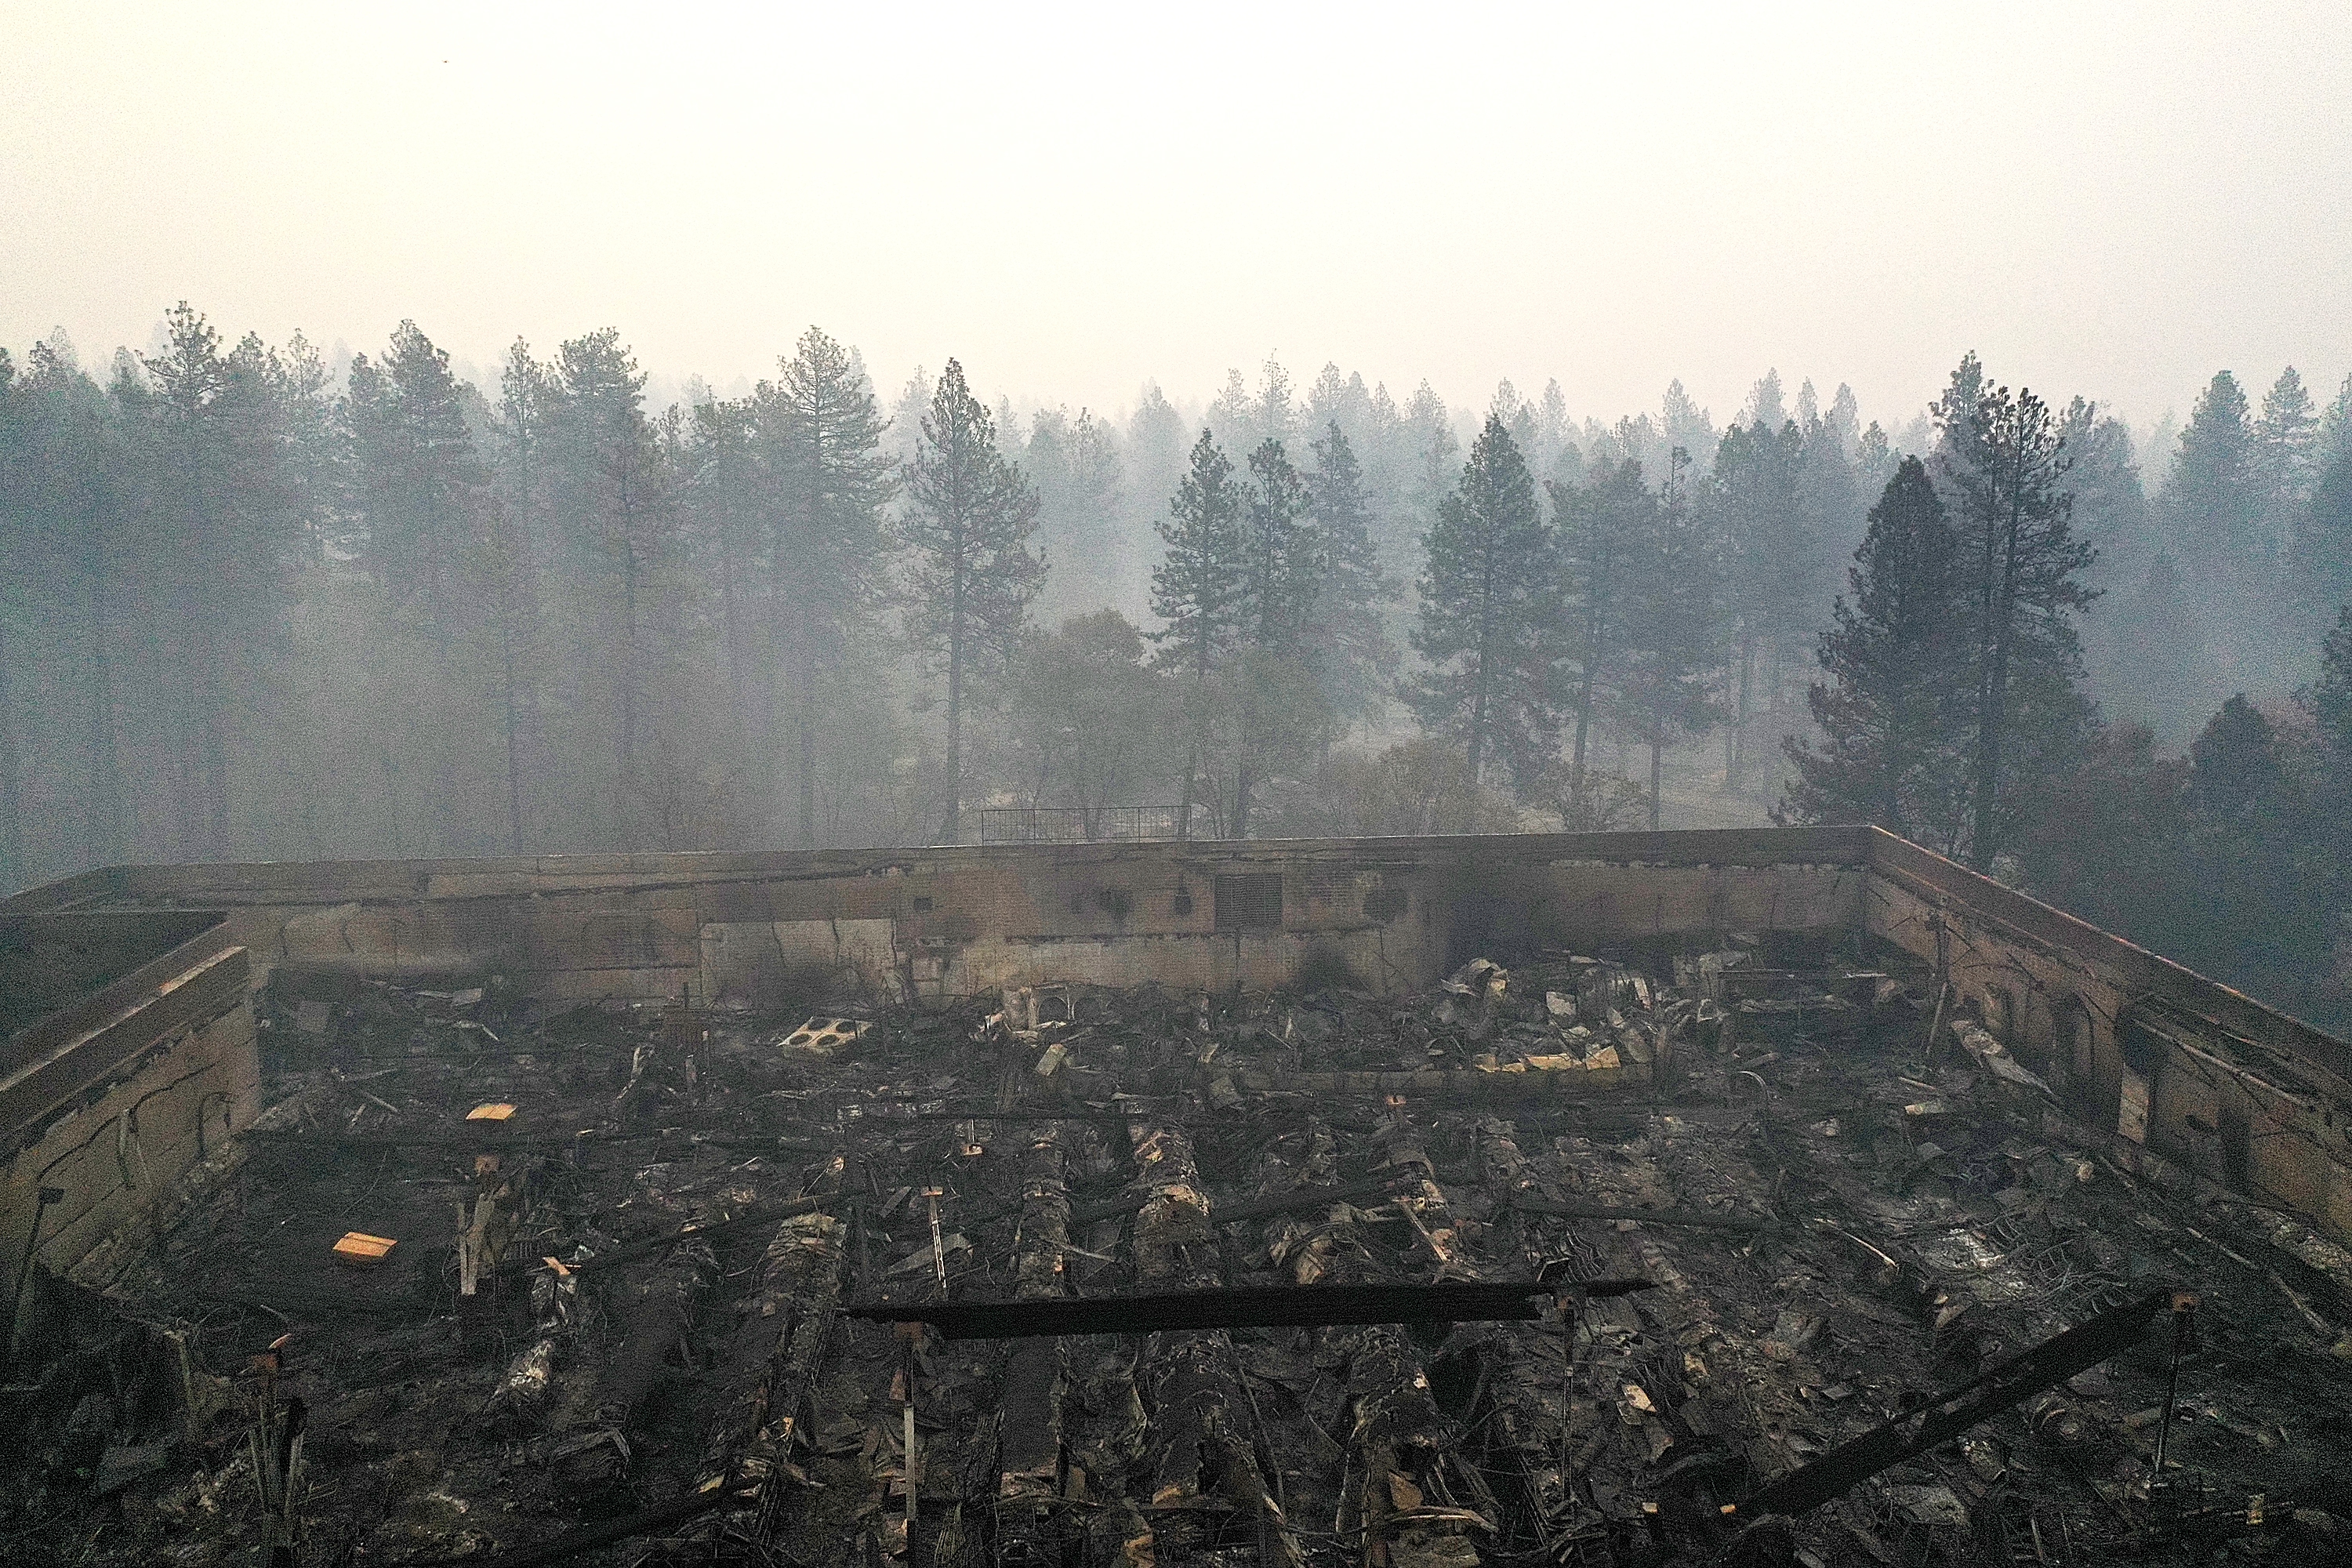 Northern California Camp Fire: Wildfire kills 142,000 acres - Curbed SF